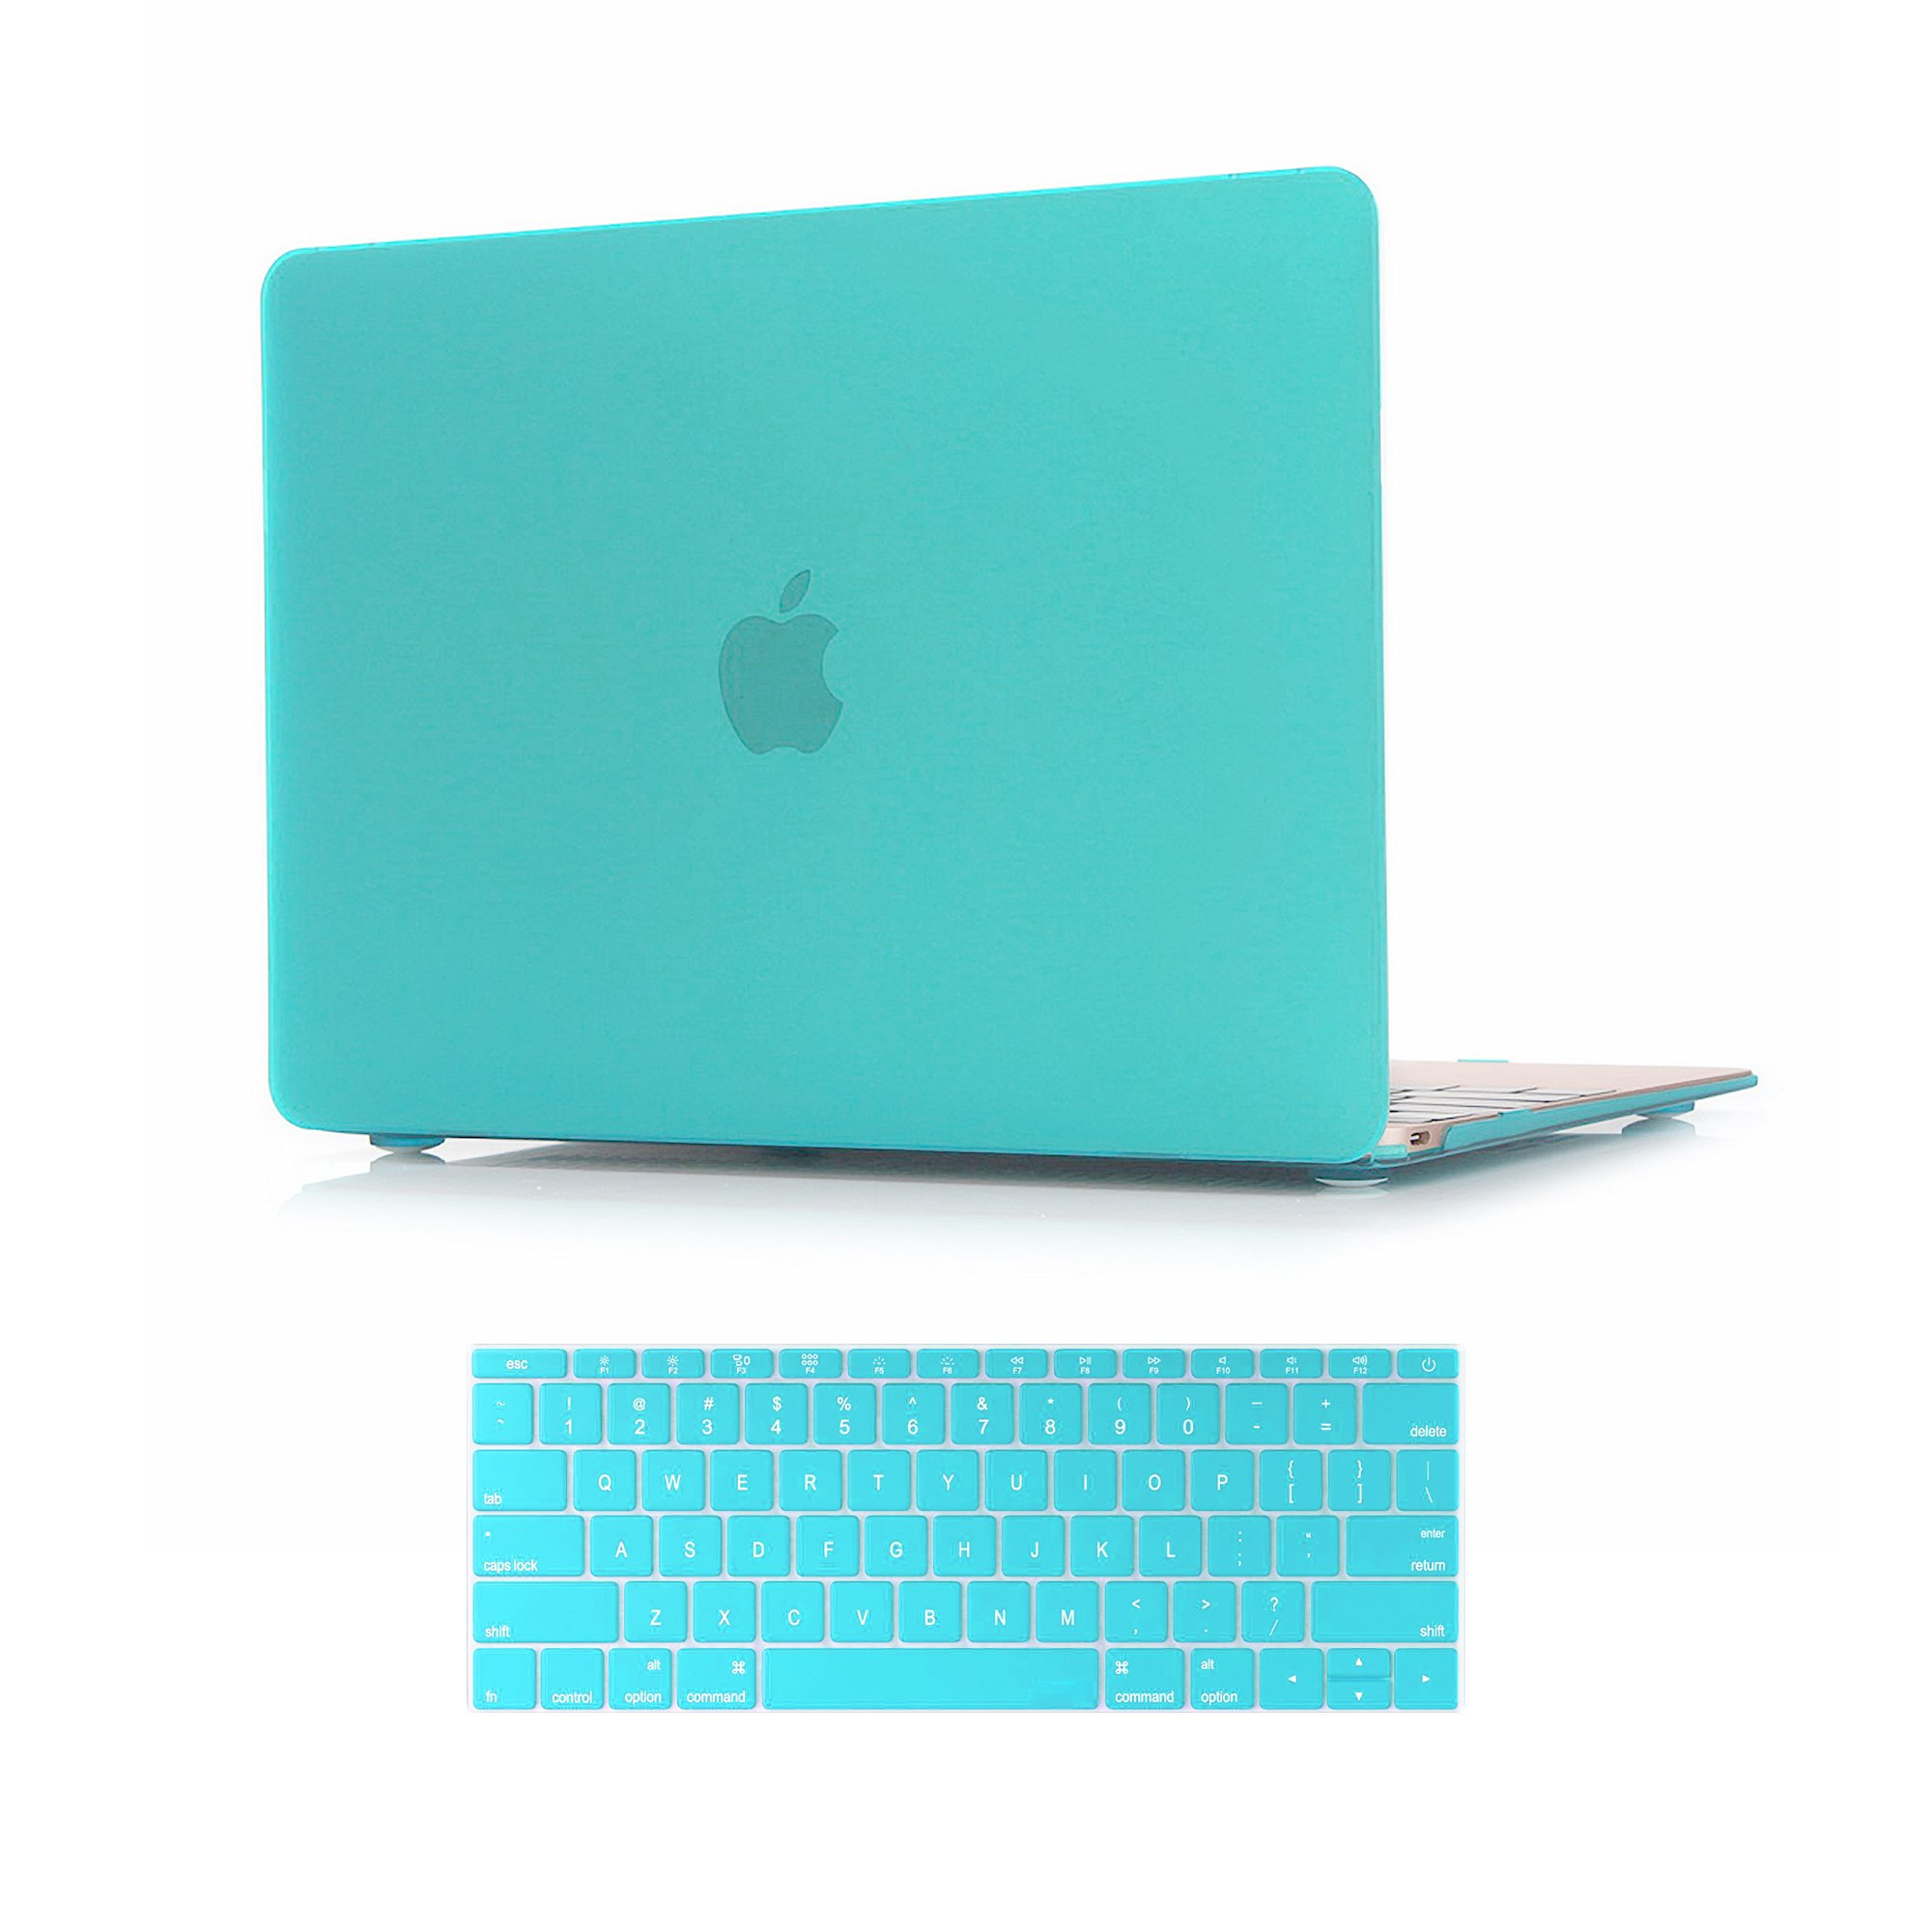 Versality VMBCN12TBM Hard Case Cover for The New MacBook and Matching Keyboard Cover in Turquoise Matte, Blue